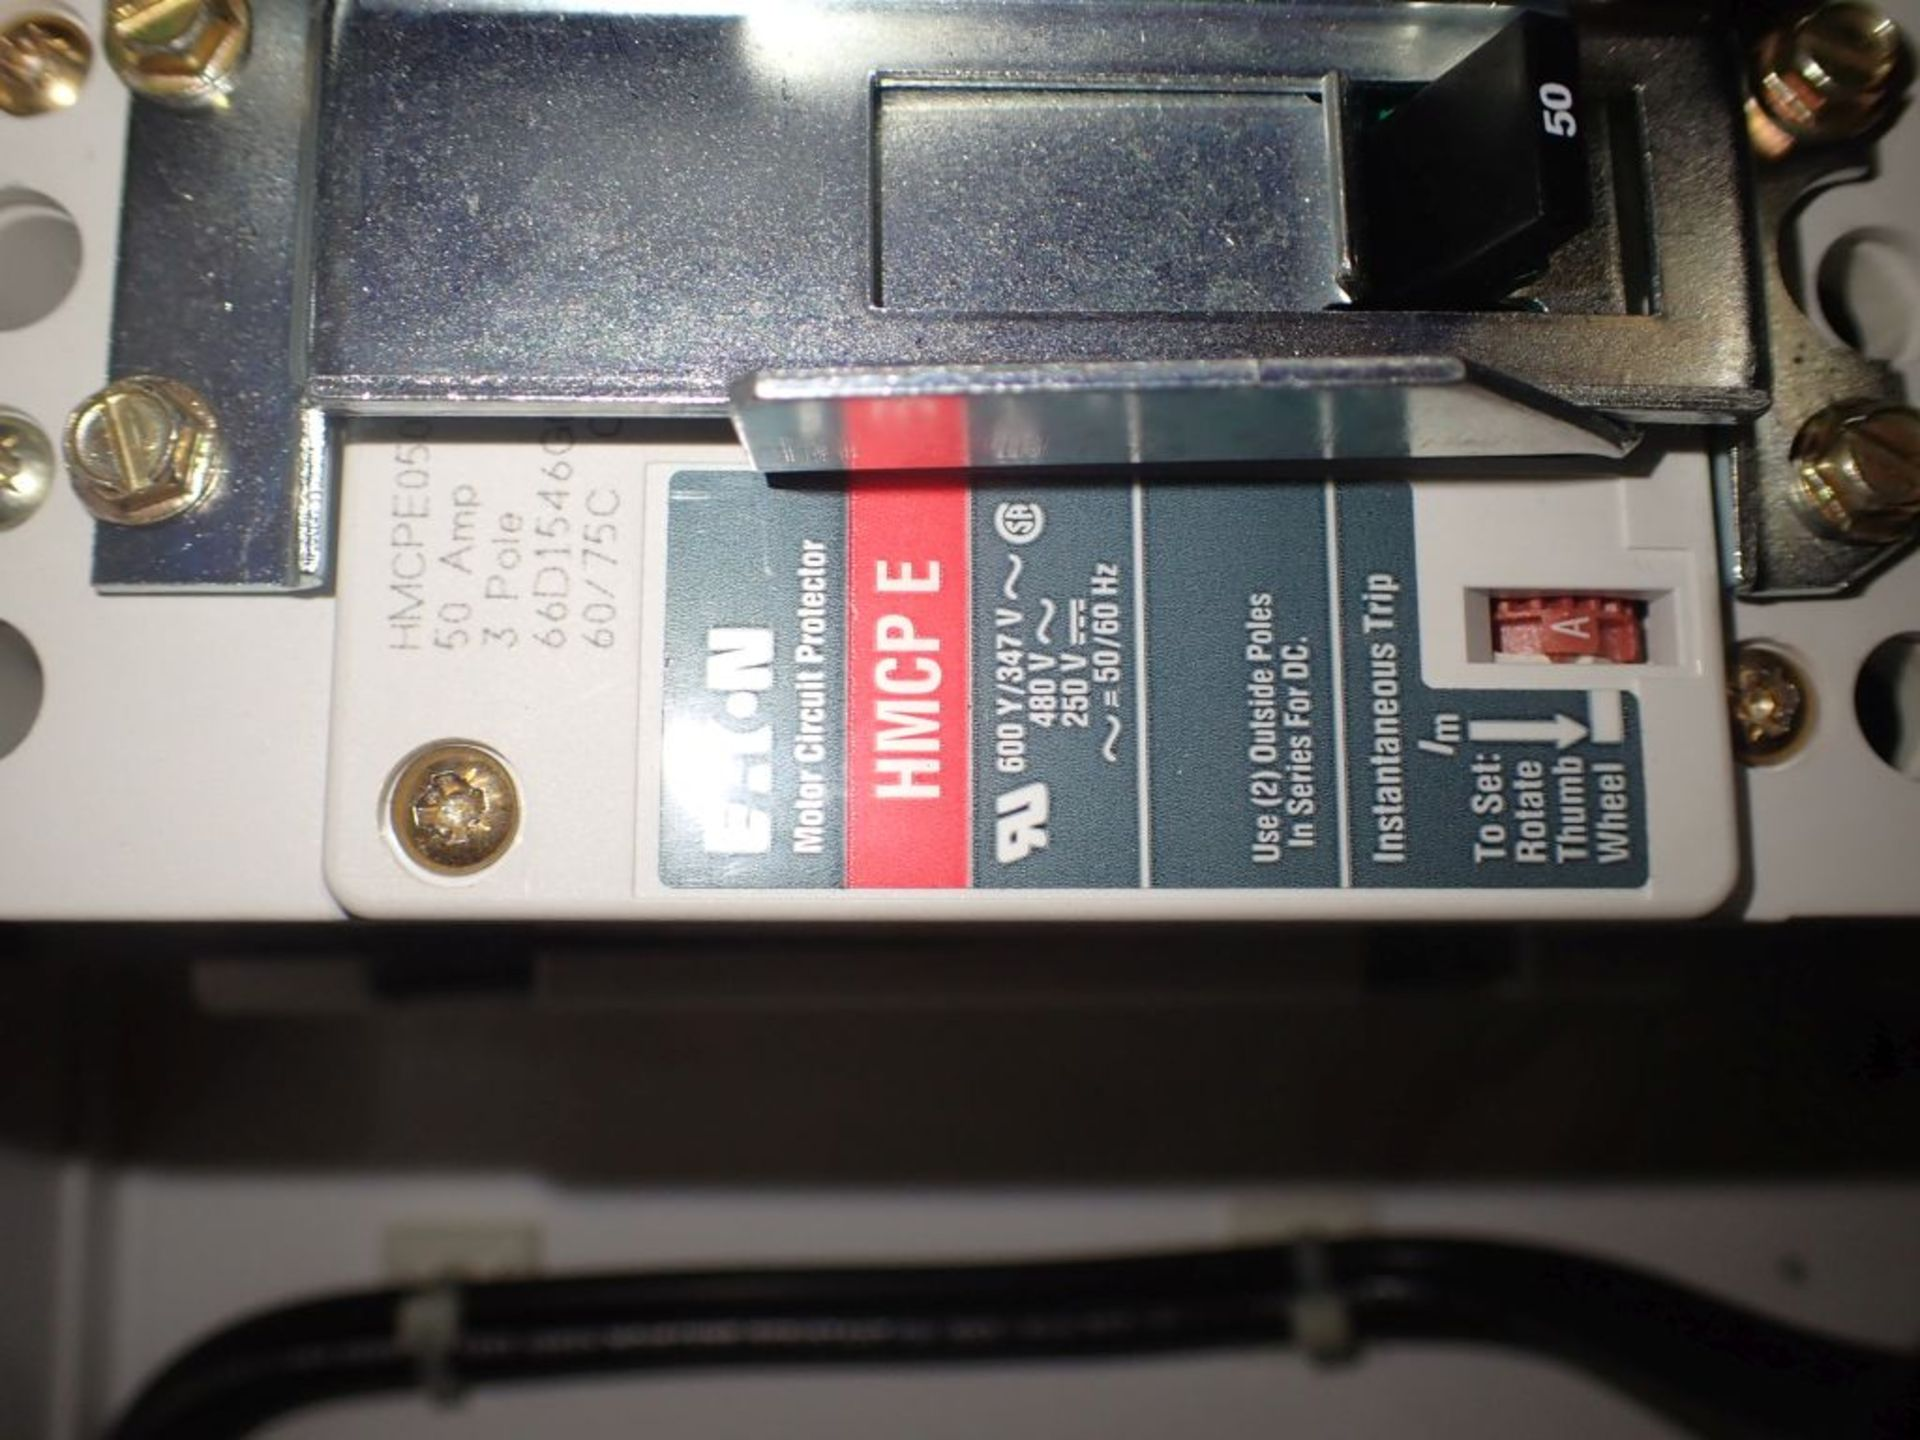 Eaton Freedom 2100 Series Motor Control Center   (2) F206-15A-10HP; (2) SVX900-50A, with Eaton AF - Image 44 of 48